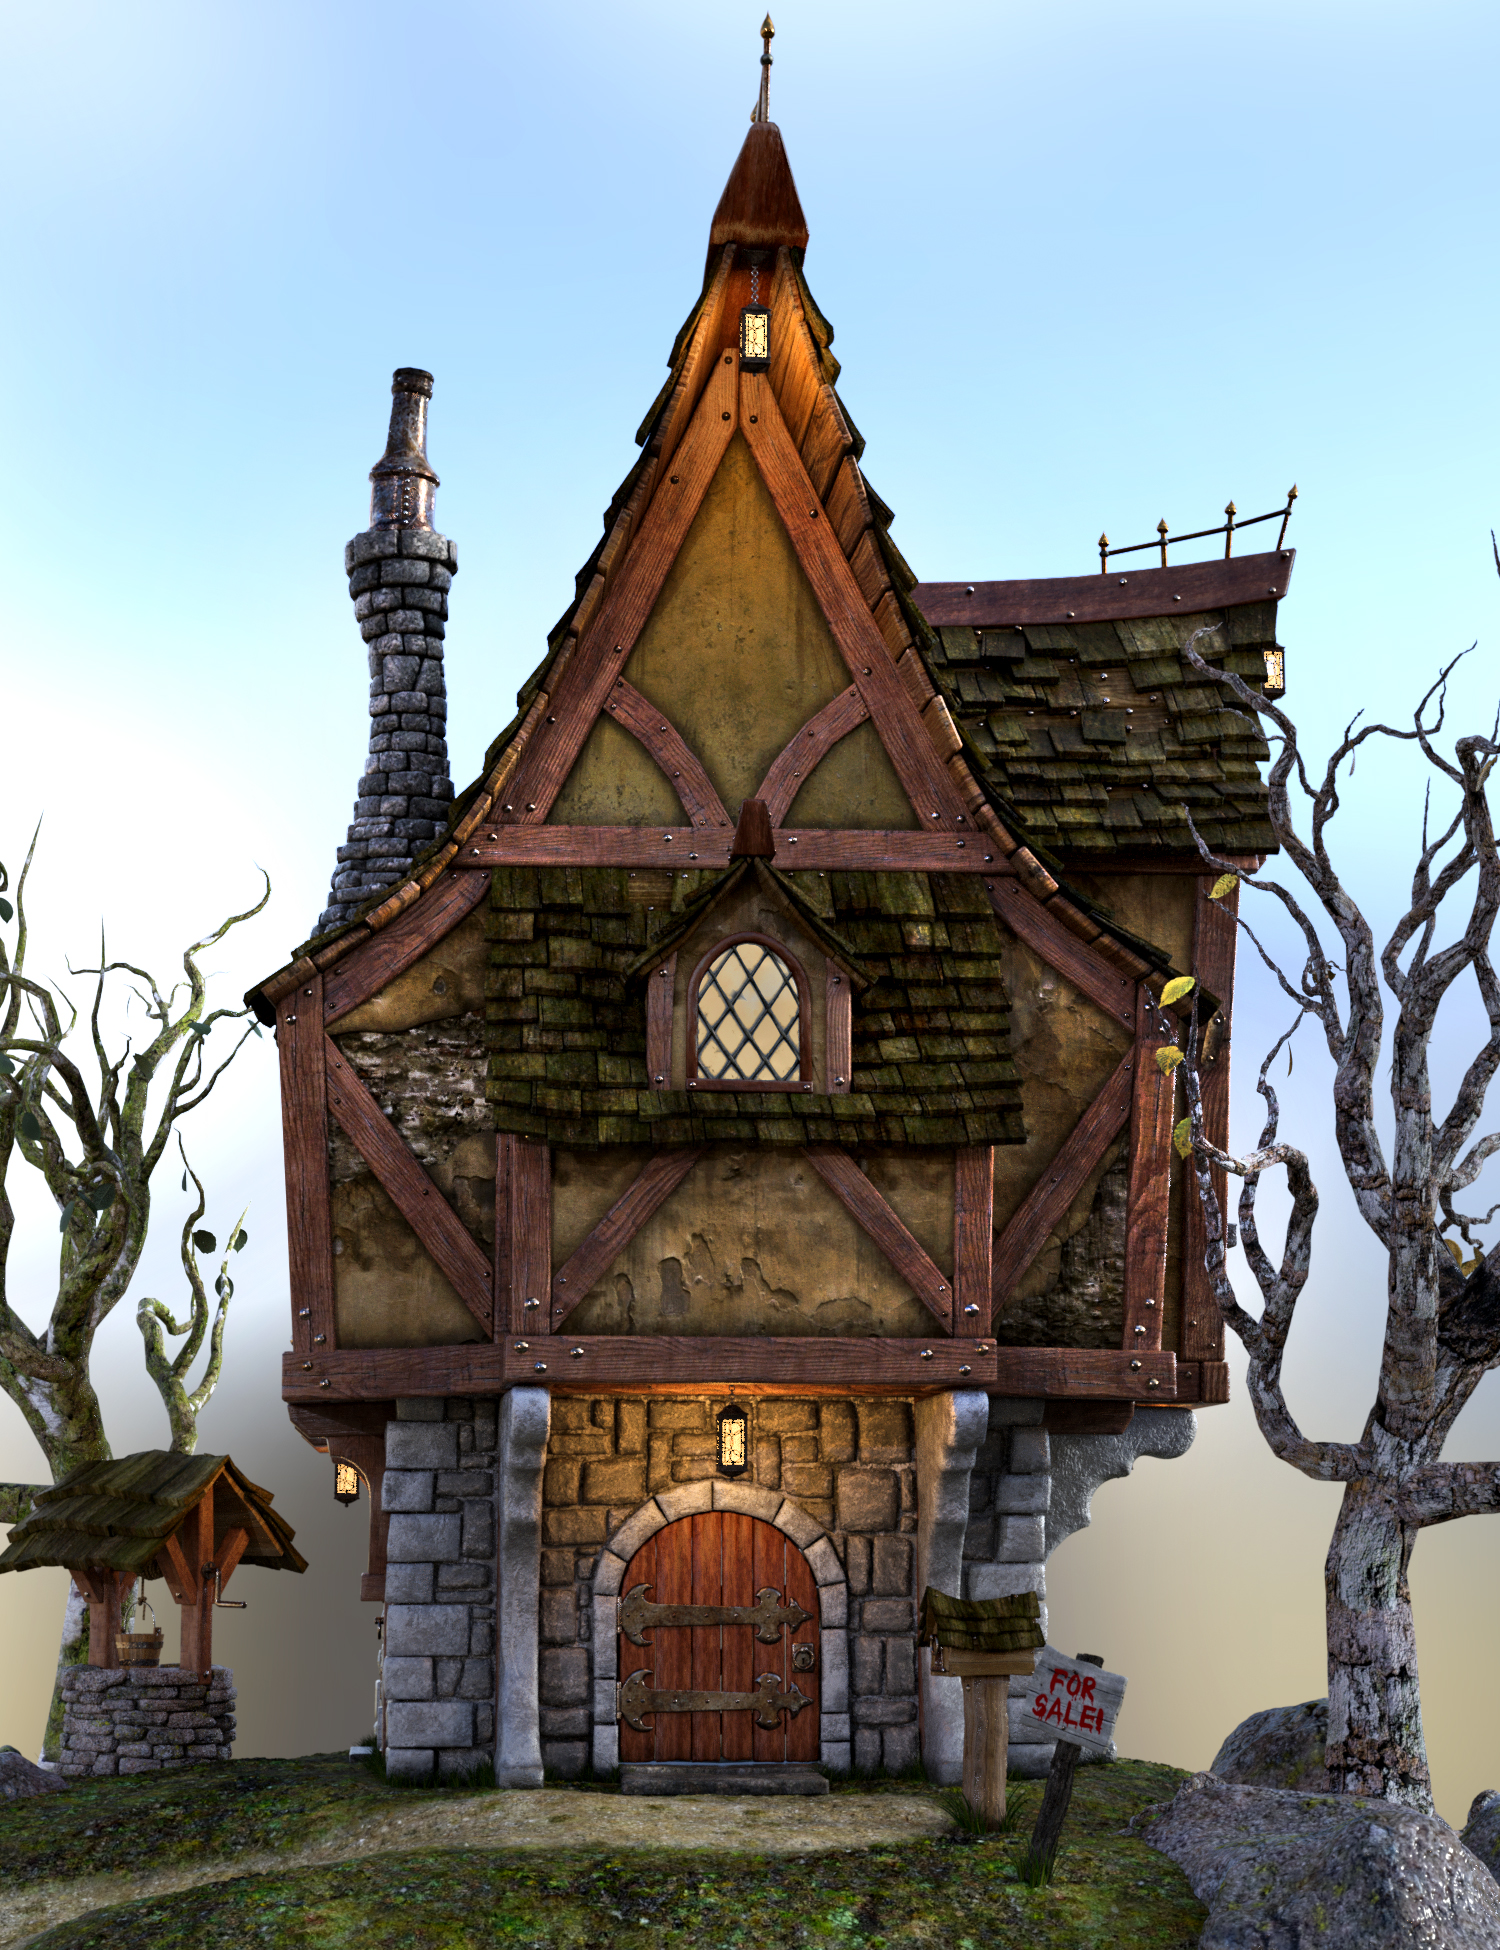 Old Crone's Home by: The Alchemist, 3D Models by Daz 3D